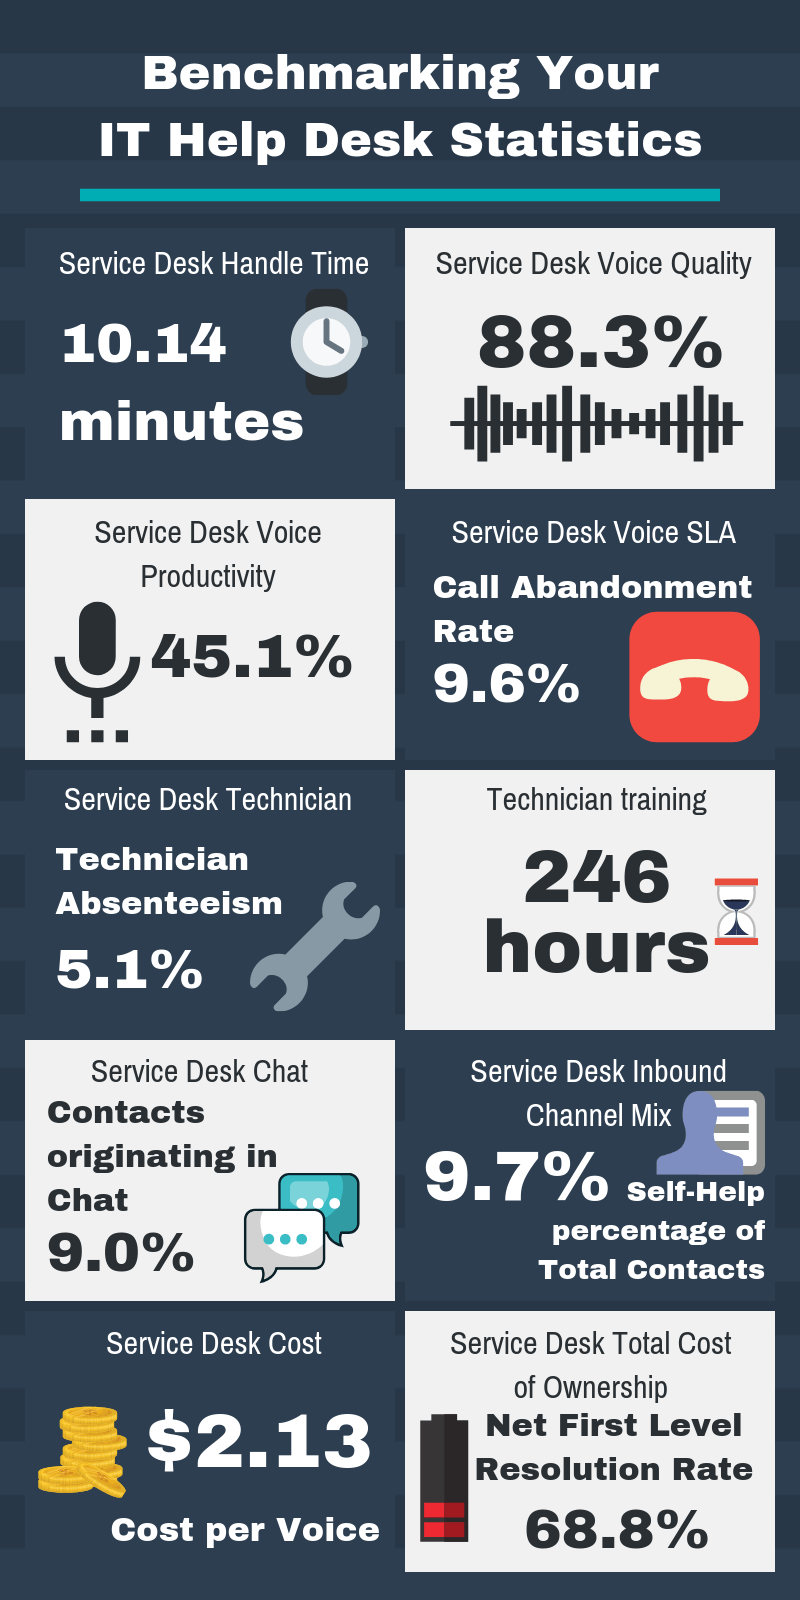 Benchmarking Your IT Help Desk Statistics